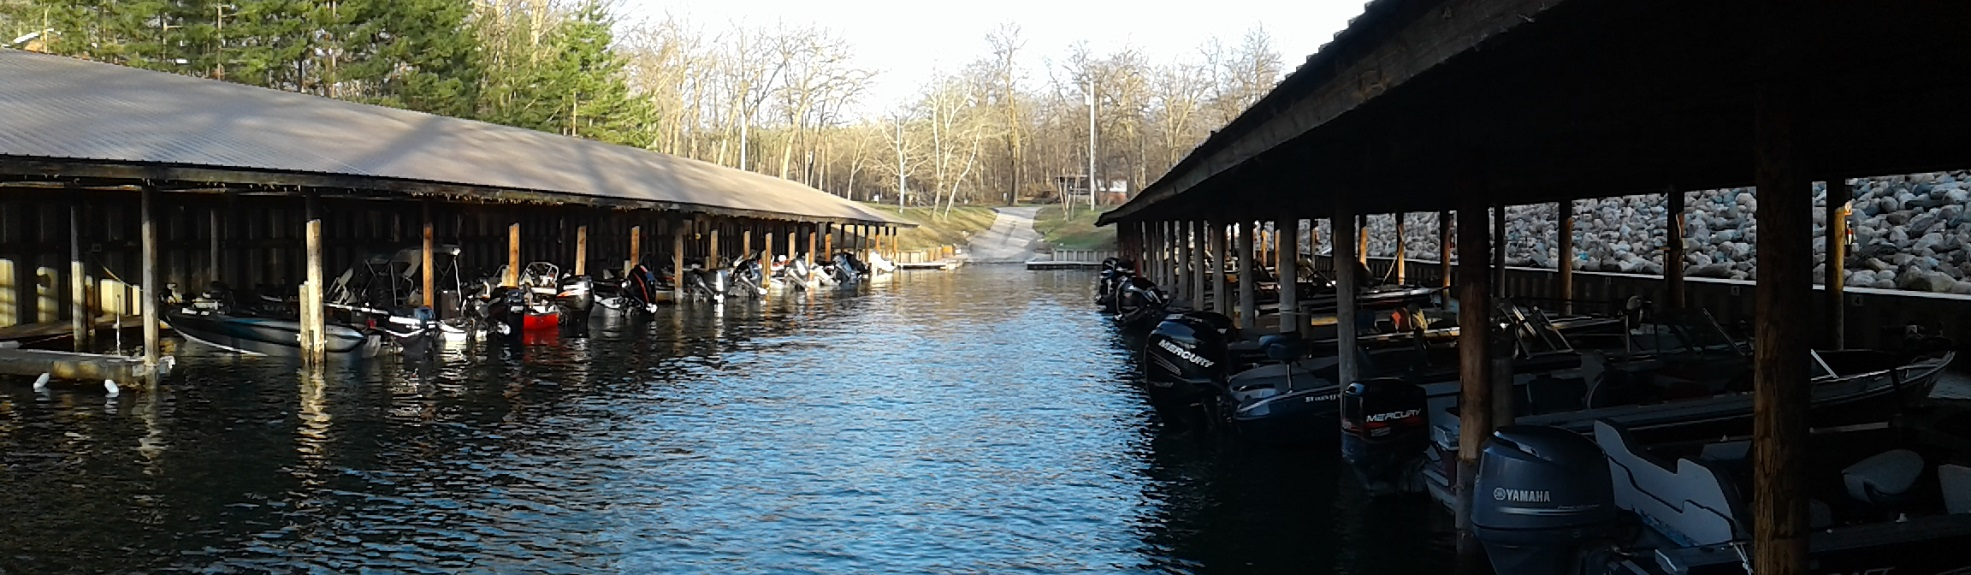 Need a resort with a covered harbor for your fishing boat? Adventure North Resort on Leech Lake has you covered!